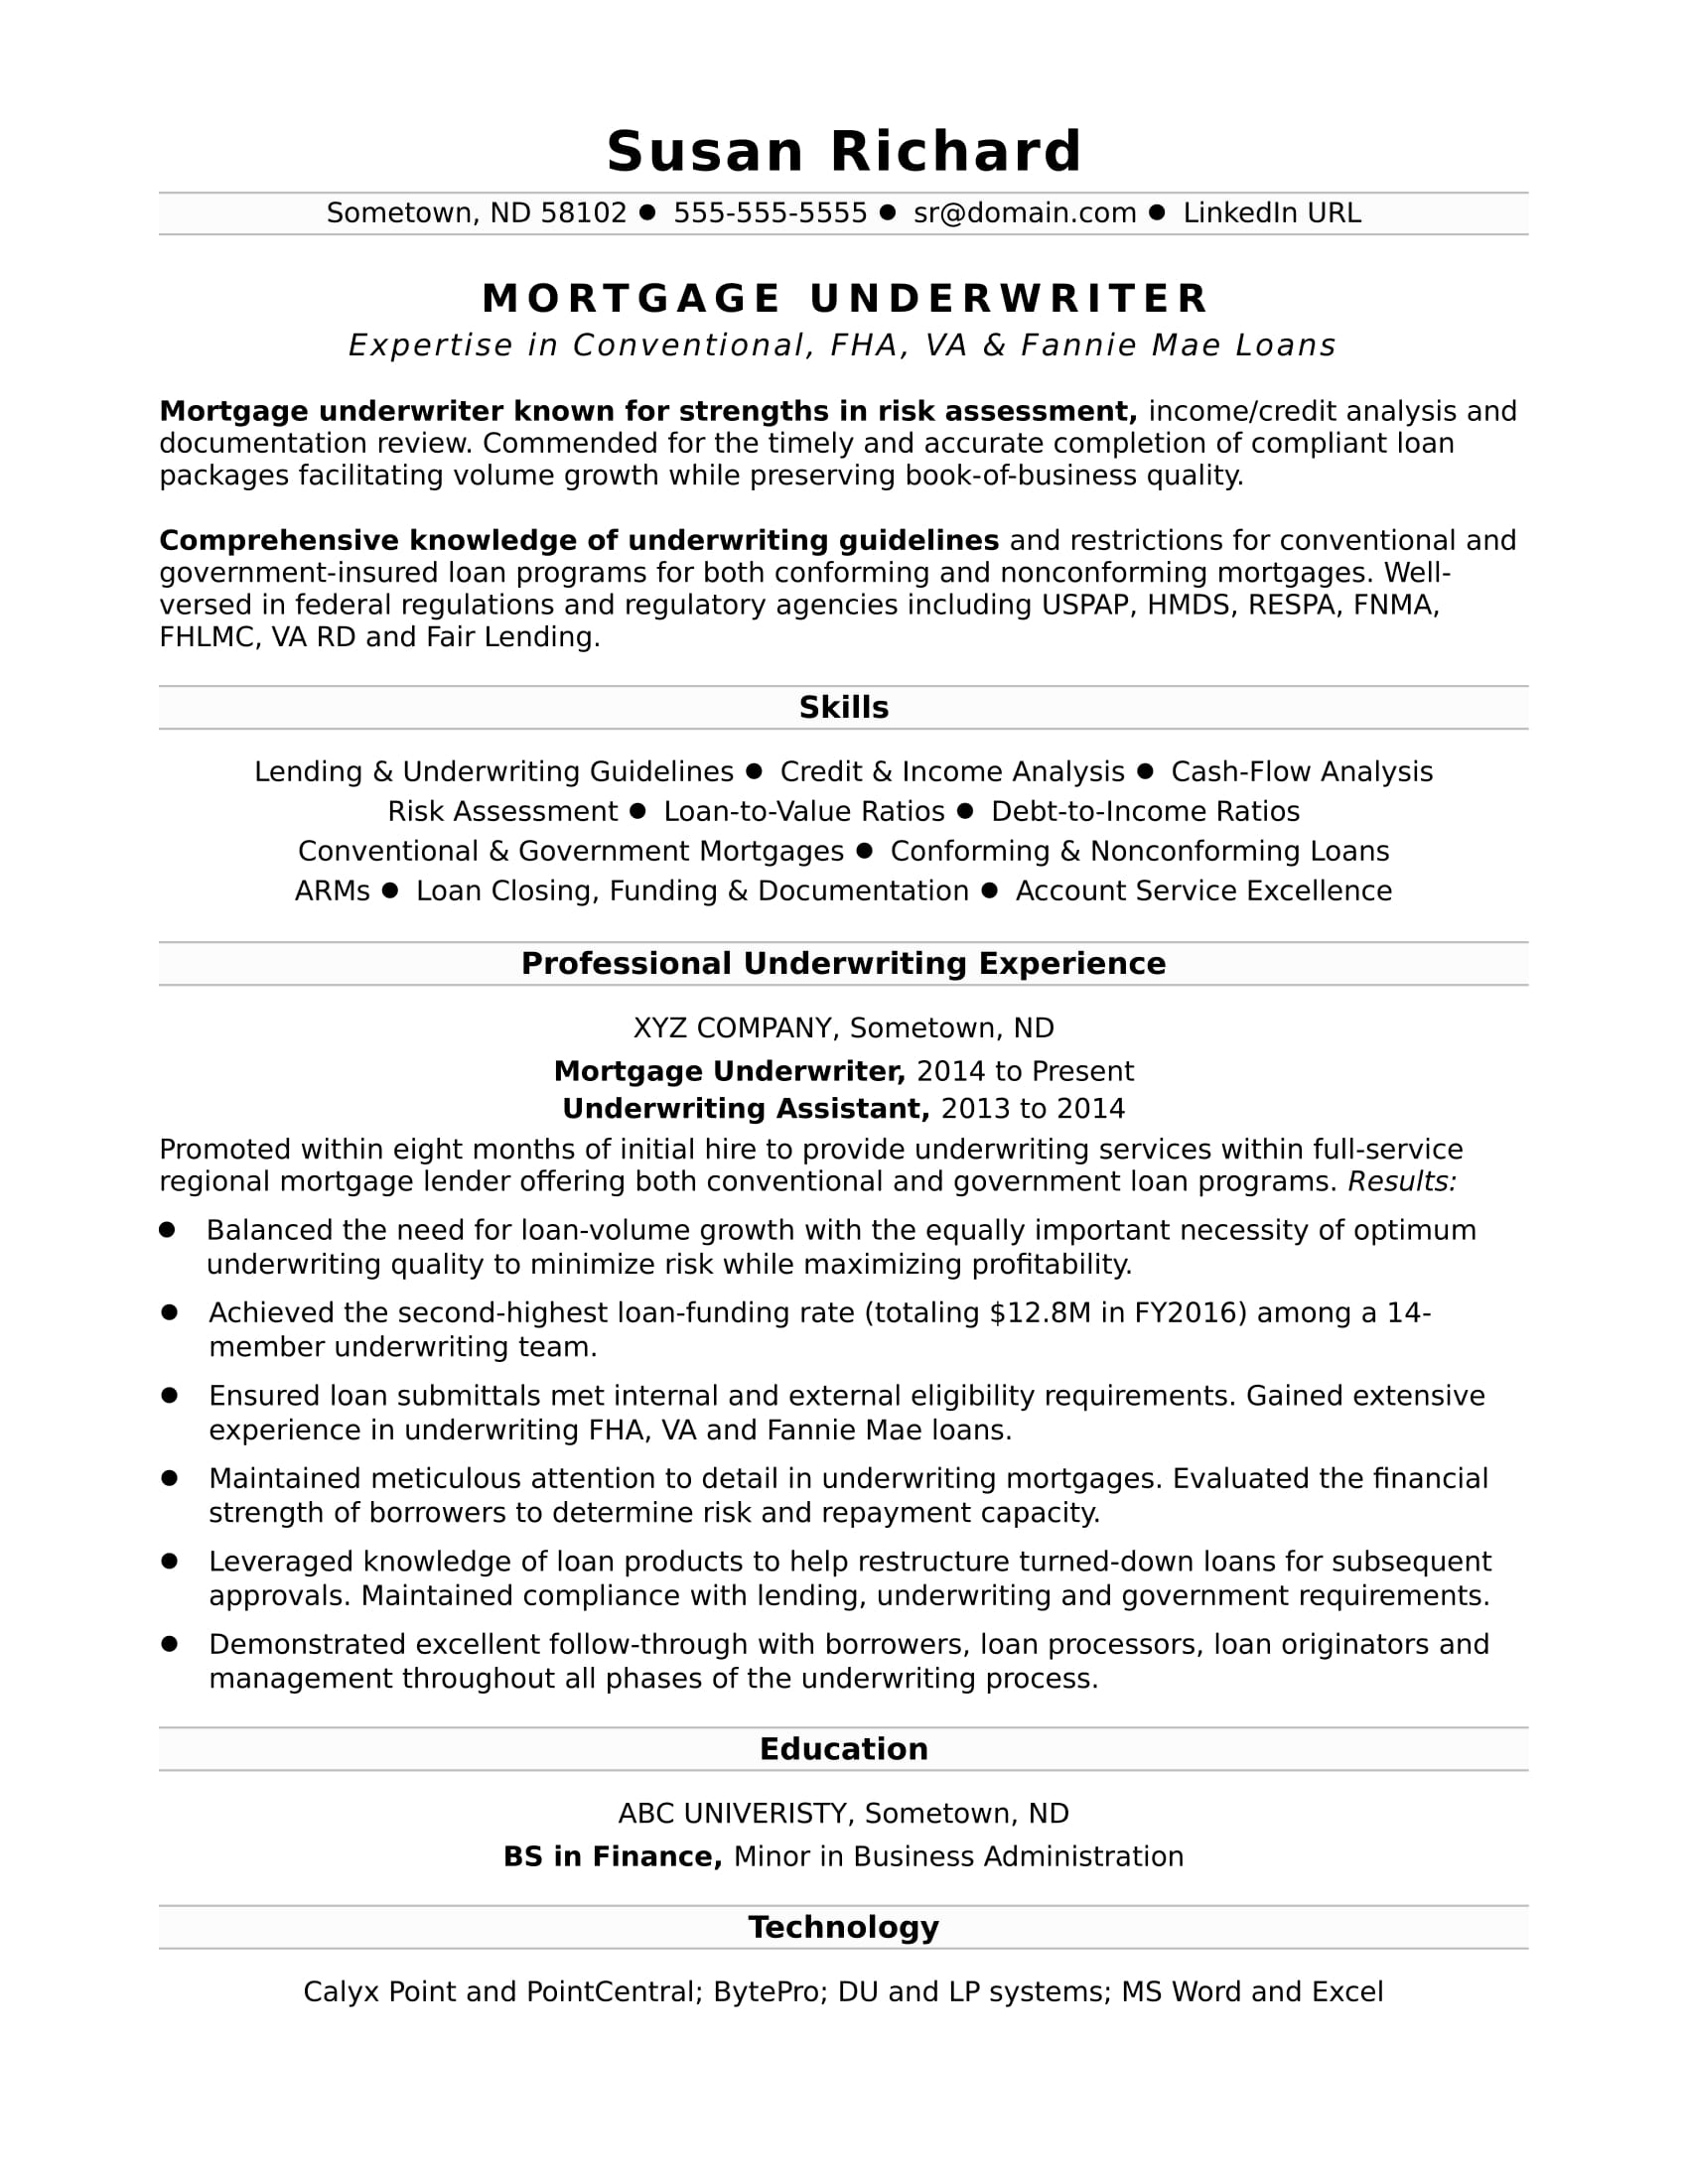 Mortgage Reference Letter From Employer Template - Mortgage Underwriter Resume Sample